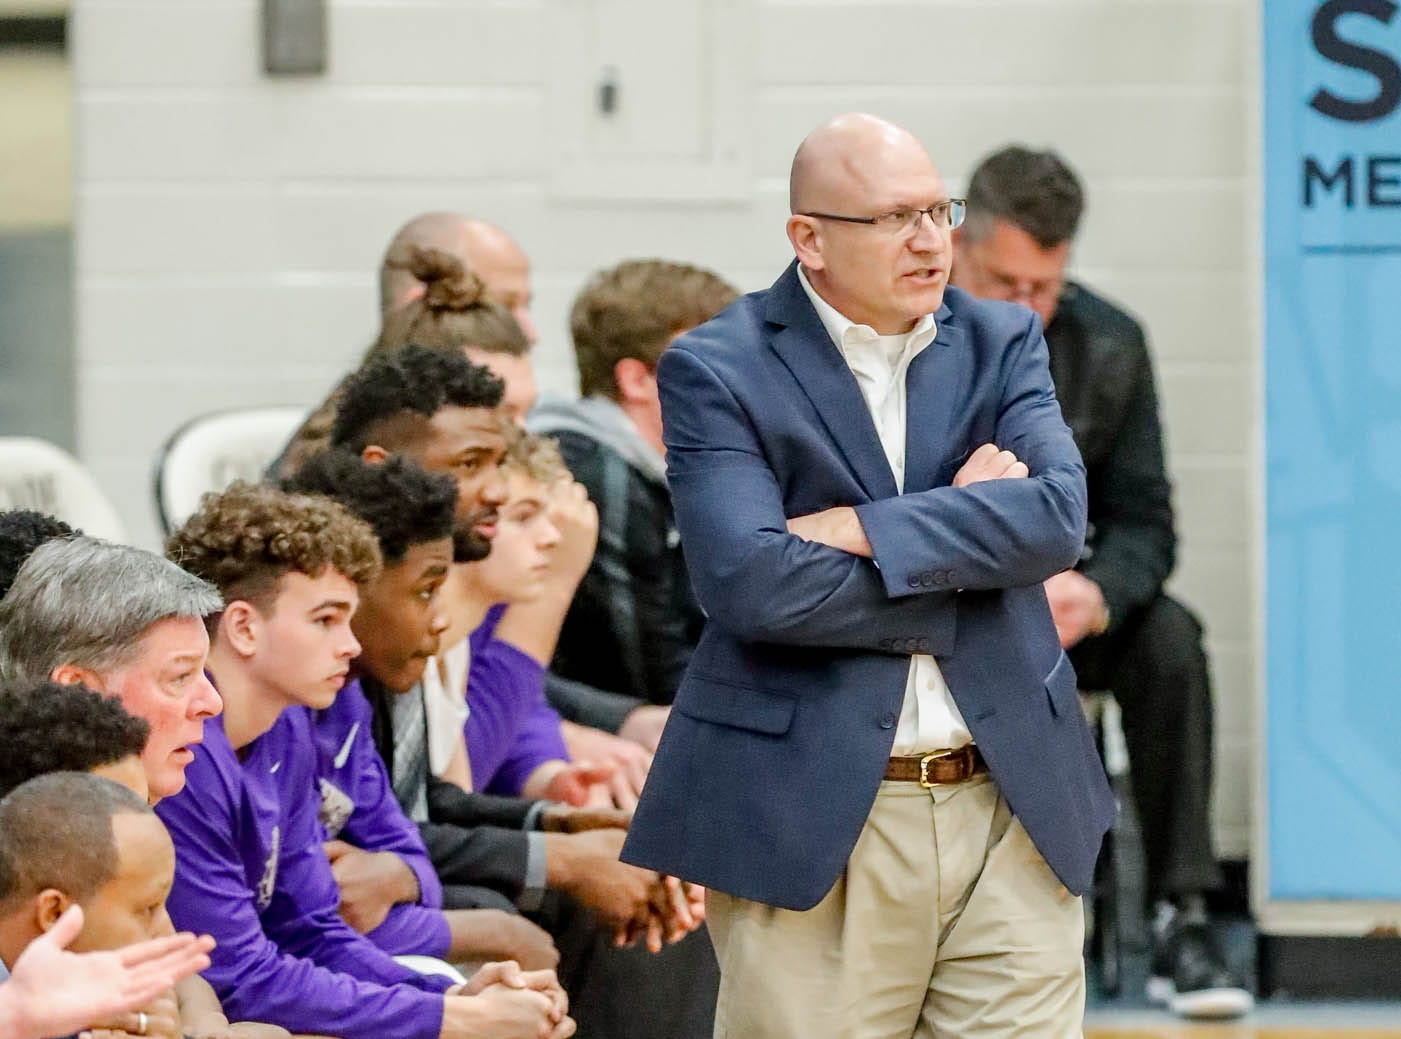 Brownsburg High School's Head Coach Steve Lynch paces the sidelines during the 2019 Hendricks County Basketball Tournament game between the Avon High School boys varsity basketball team and Brownsburg High School, held at Cascade High School on Saturday, Jan. 5, 2019.